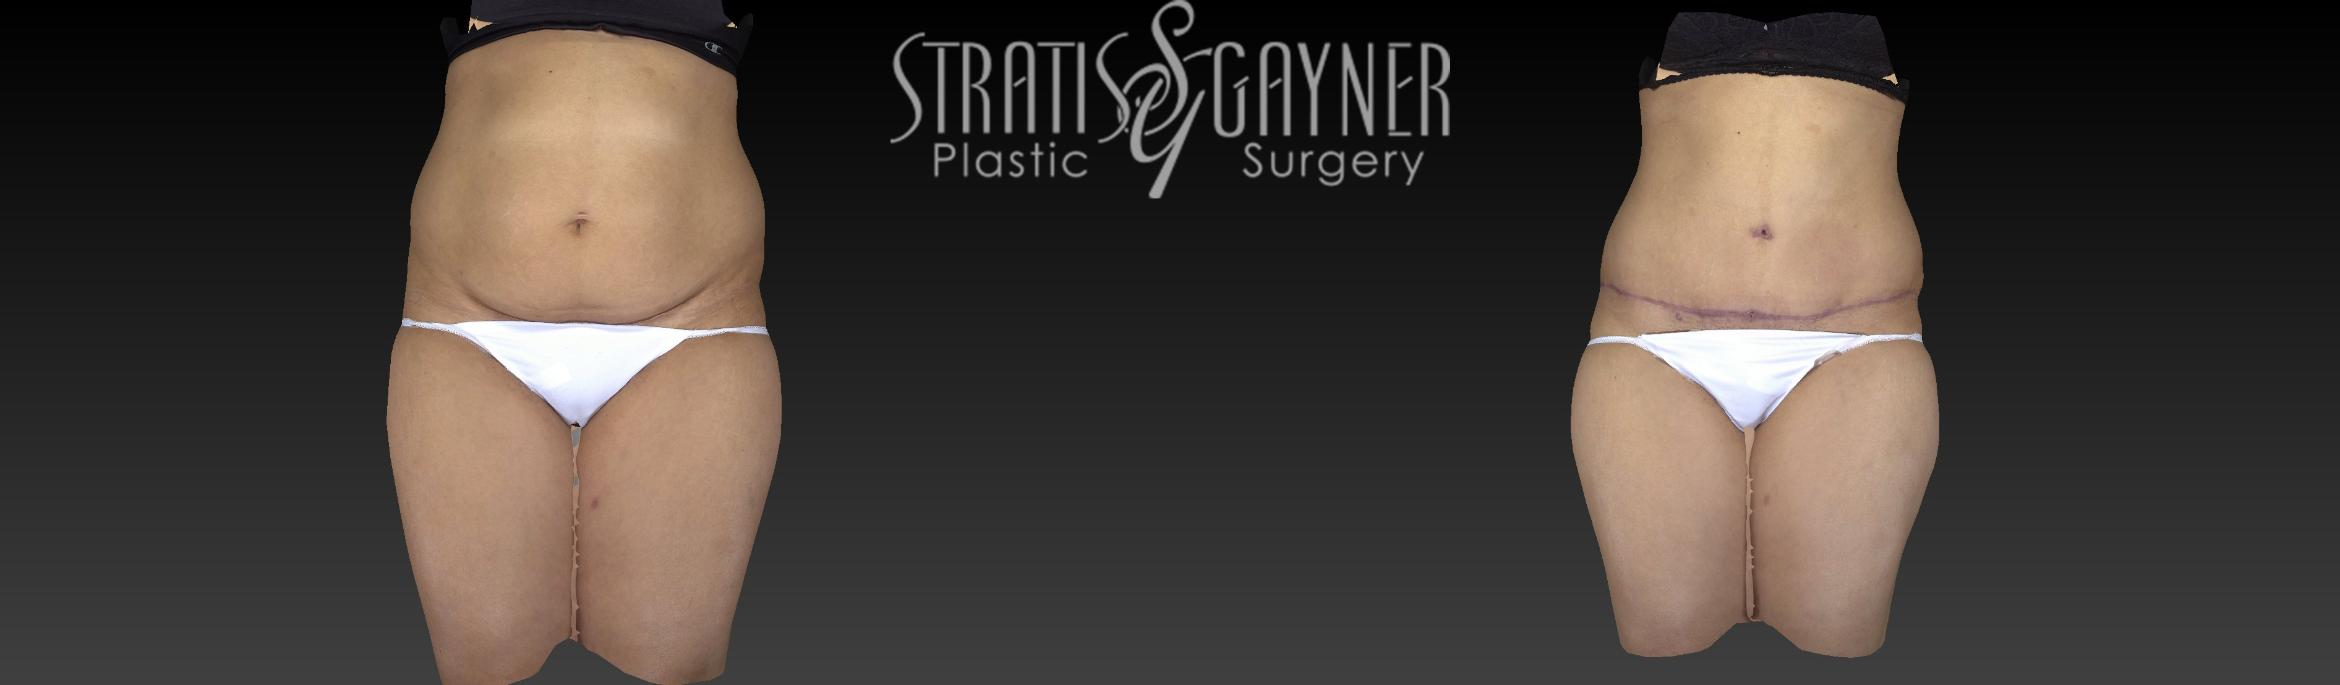 Tummy Tuck Case 17 Before & After View #1 | Harrisburg, PA | Stratis Gayner Plastic Surgery